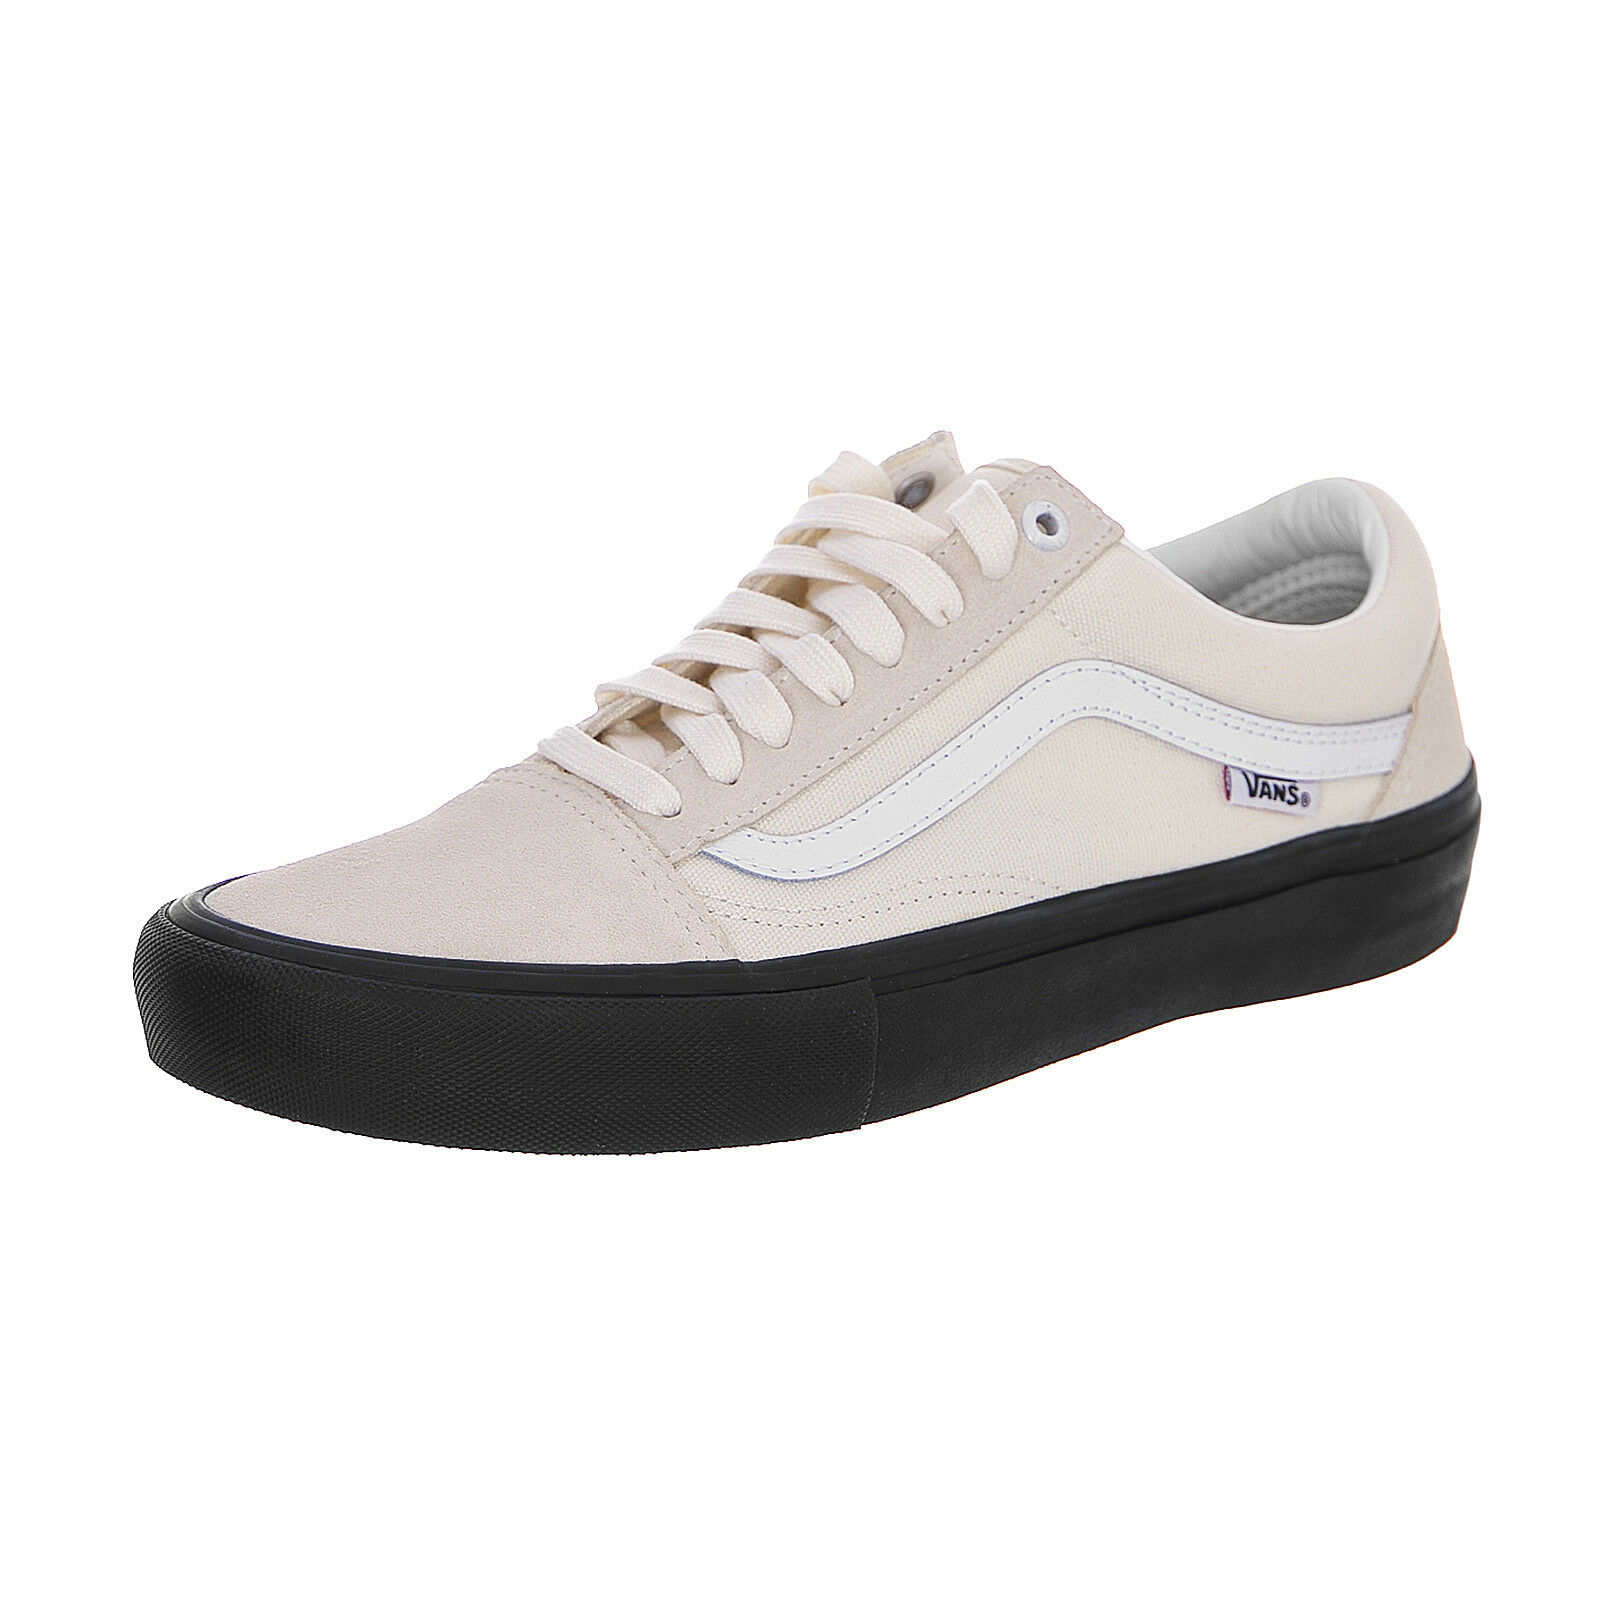 Vans Sneakers Mn Old Skool Pro Classic White B Bianco